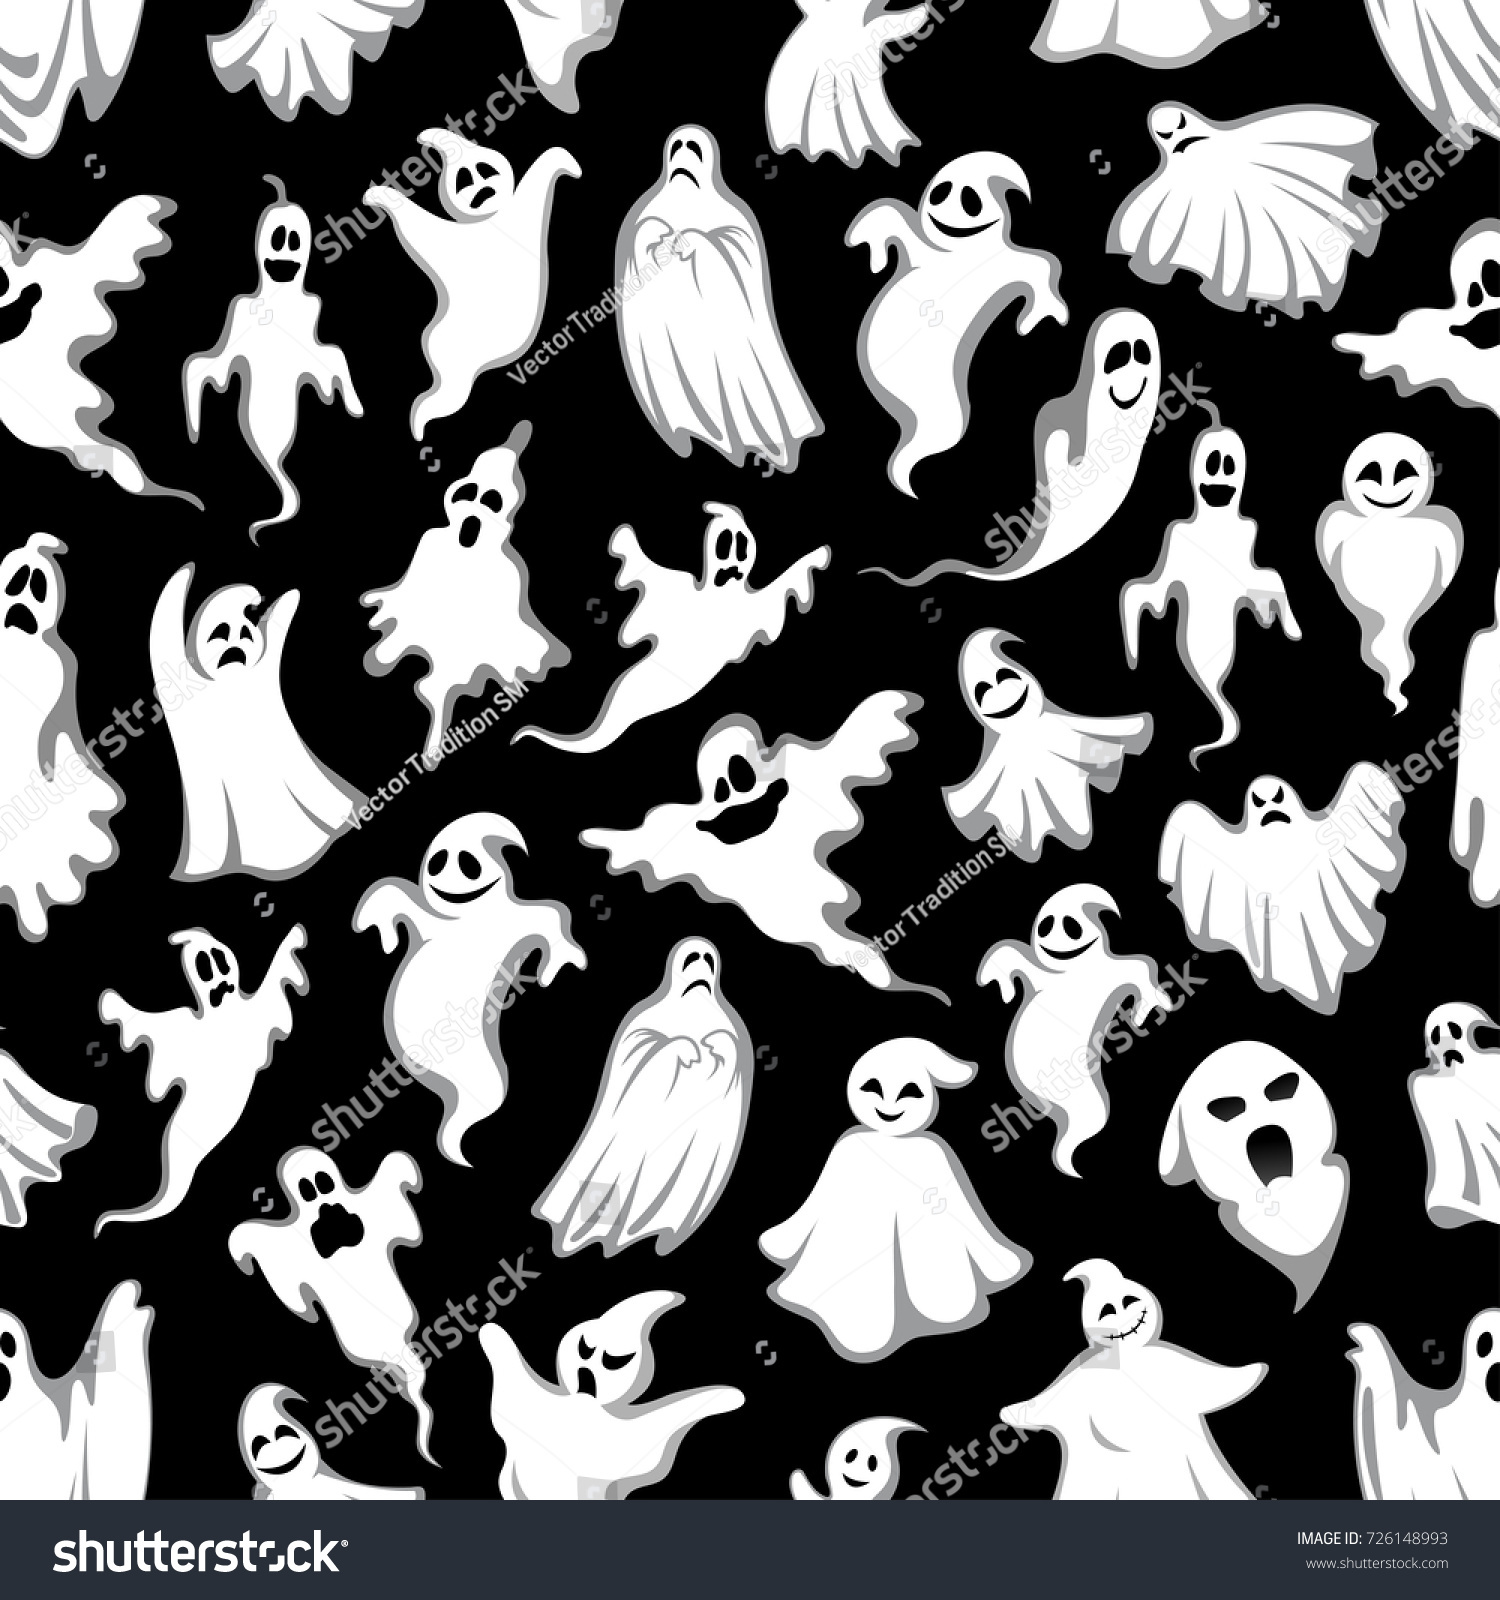 Spooky Ghost Halloween Holiday Seamless Pattern Vector – Scary or Horror Invitation Cards